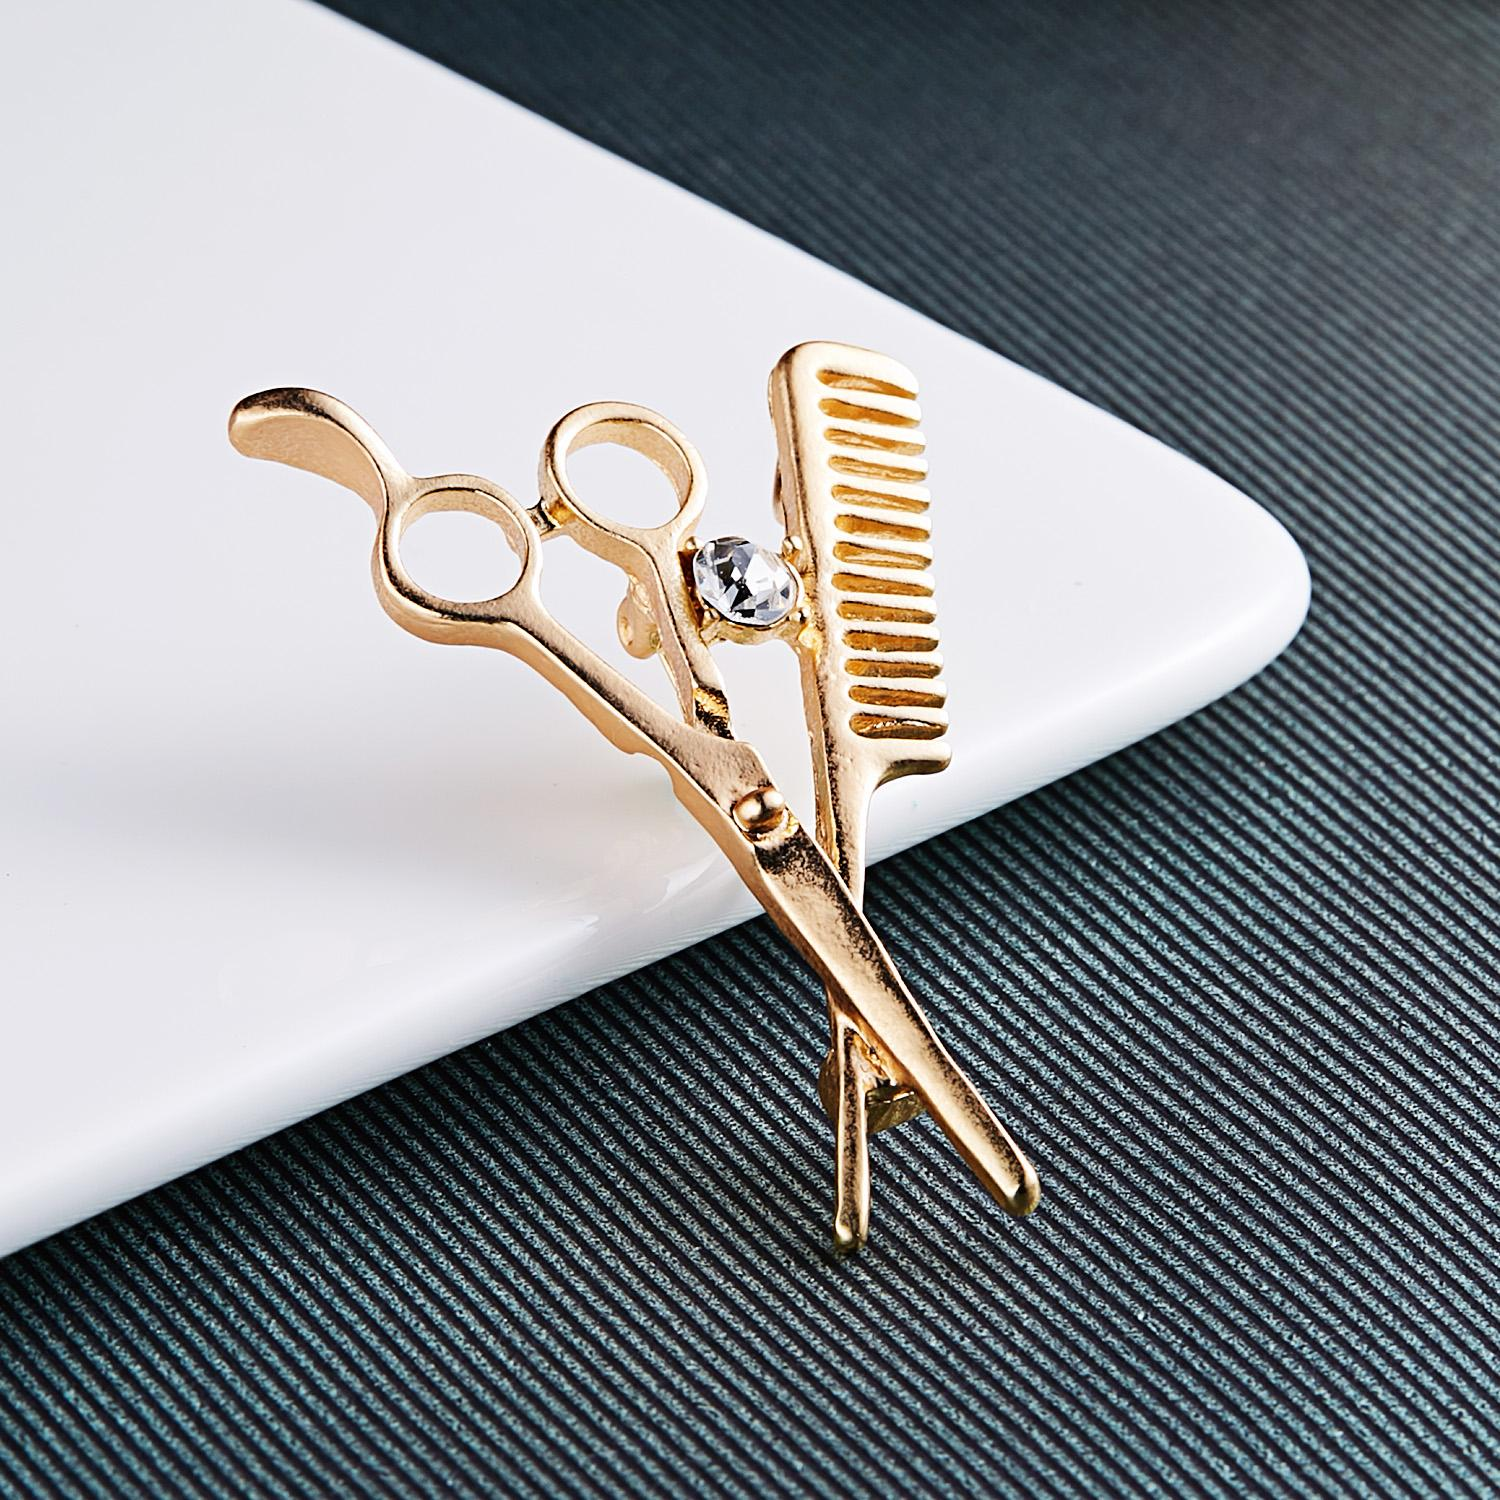 Comb Scissors Brooch Hat Collar Clips Bijoux Austrian Crystal Hijab Pins Up Brooches for Wedding Dress Girl Jewelry Brooch